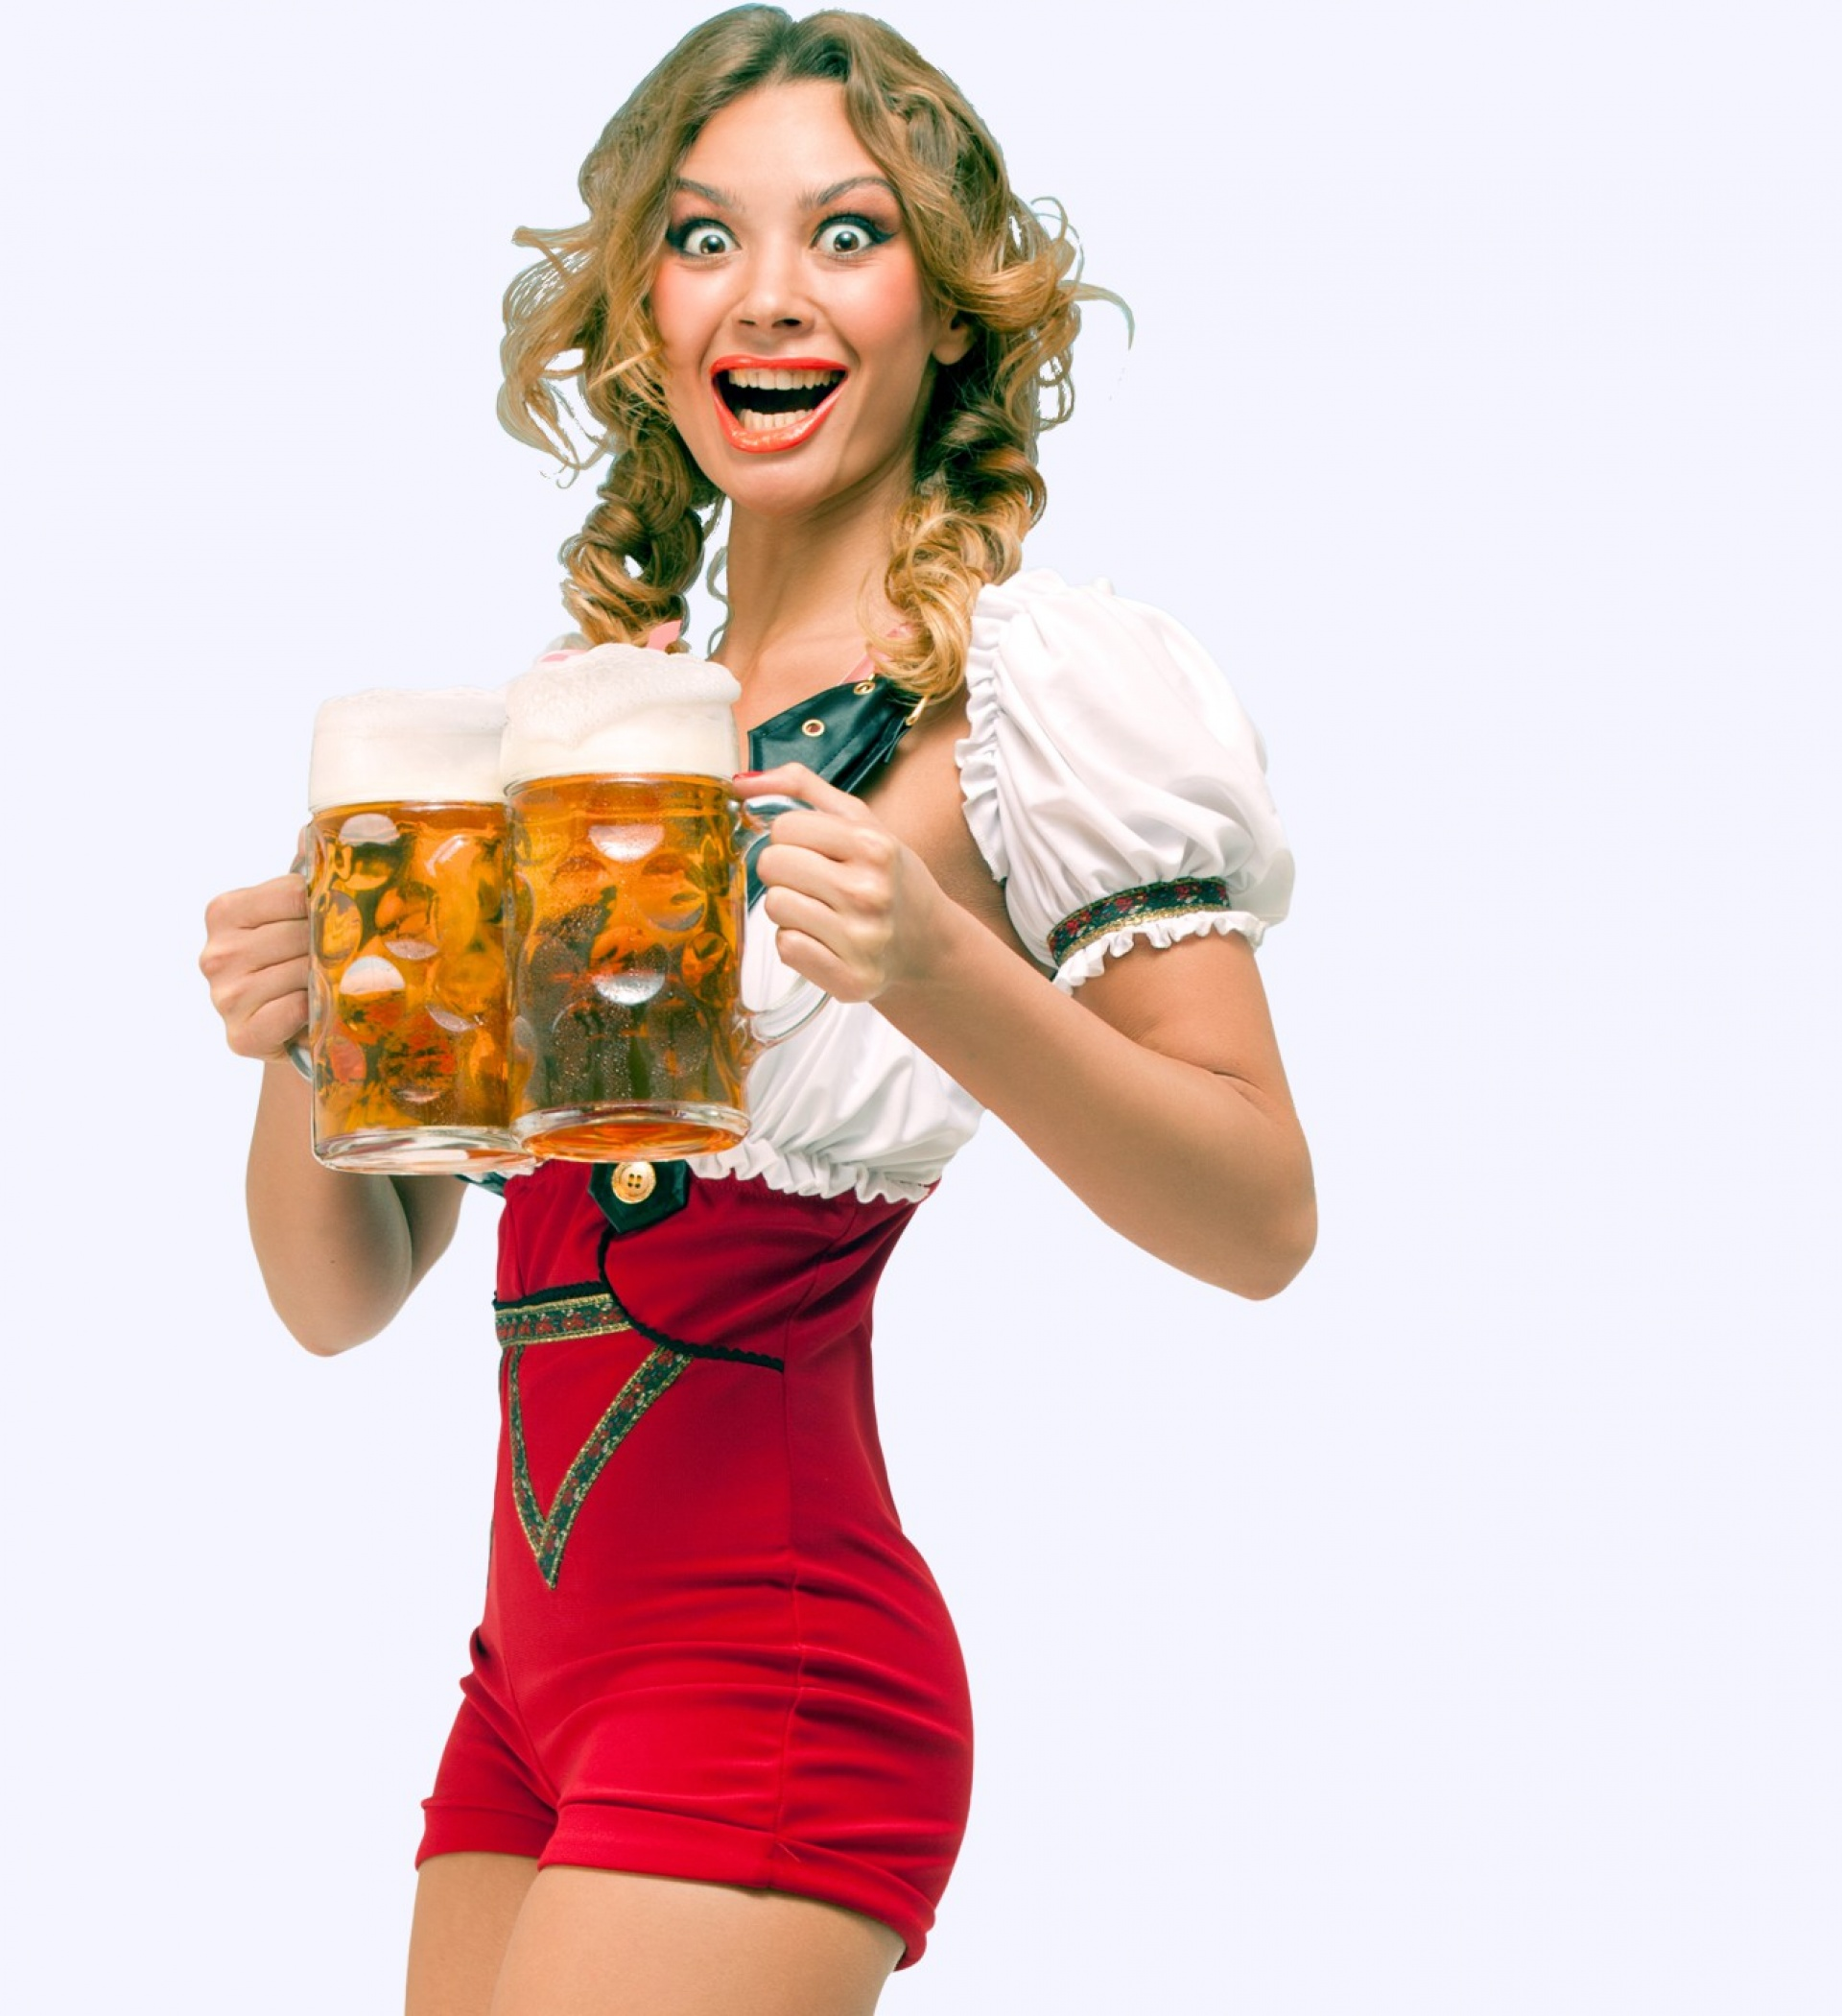 girl holding beers